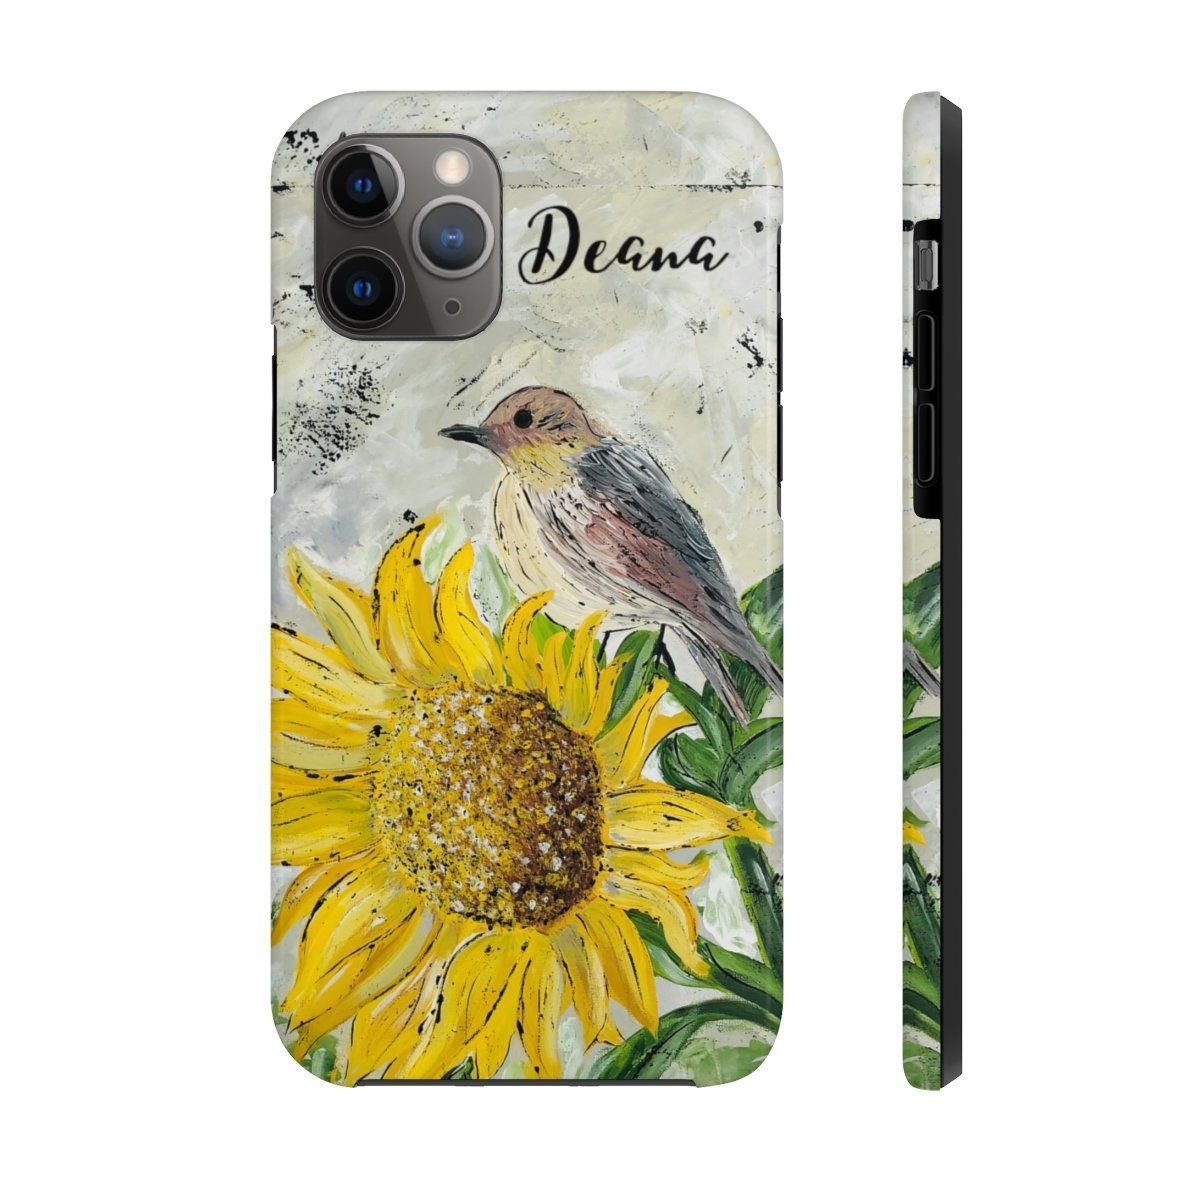 Sunflower Perch. Personalized. Case Mate Tough Phone Cases -  Sunflower Perch. Personalized. Case Mate Tough Phone Cases  #decorandfriends #ginsden #homedecor #h - #case #cases #Mate #Perch #Personalized #phone #phonecasediy #phonecaseforgirls #phonecasepainted #Sunflower #Tough